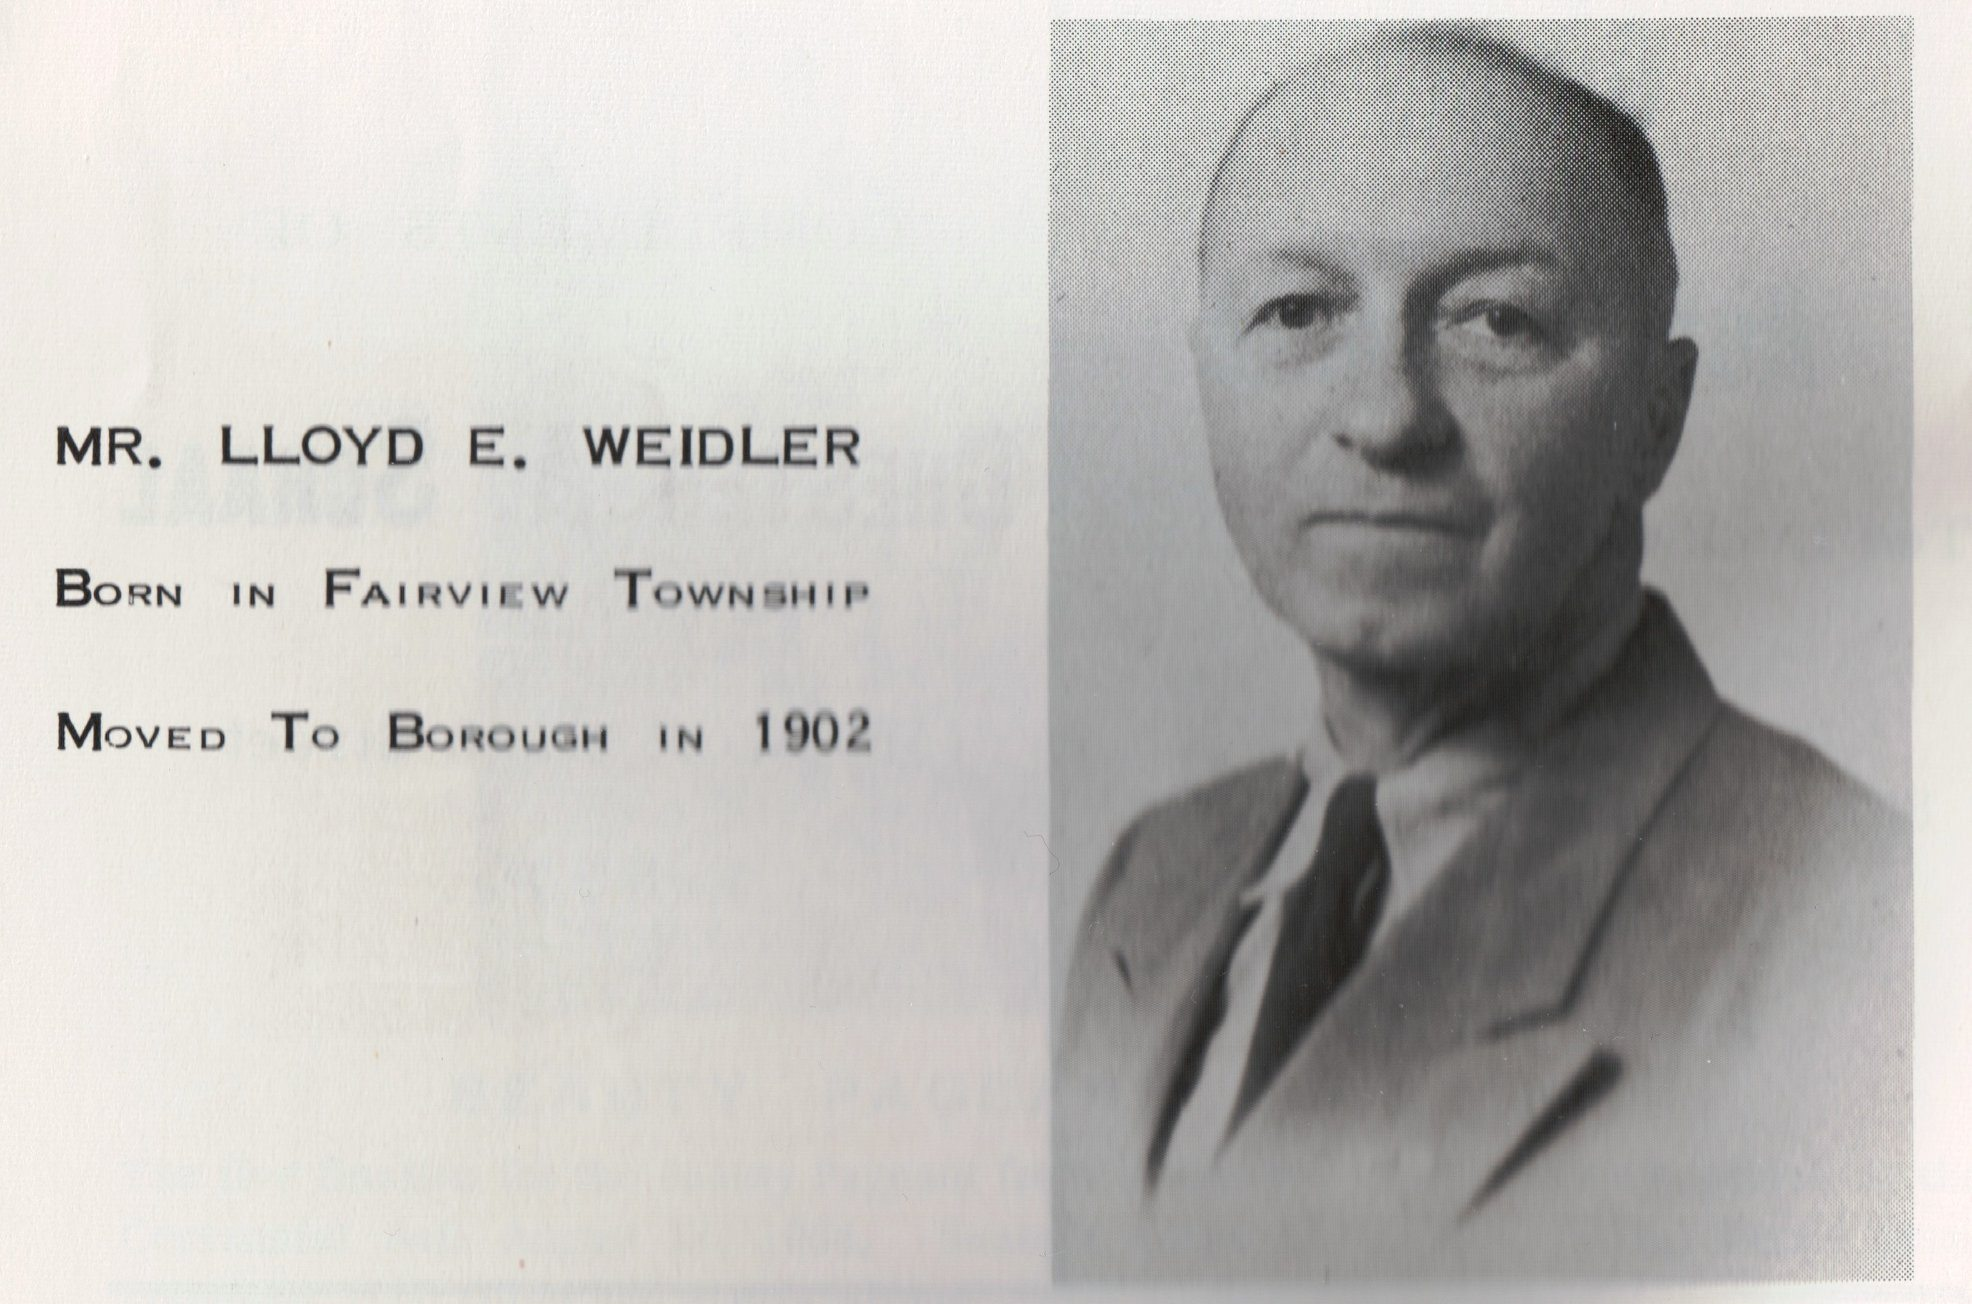 Mr. Lloyd E. Weidler